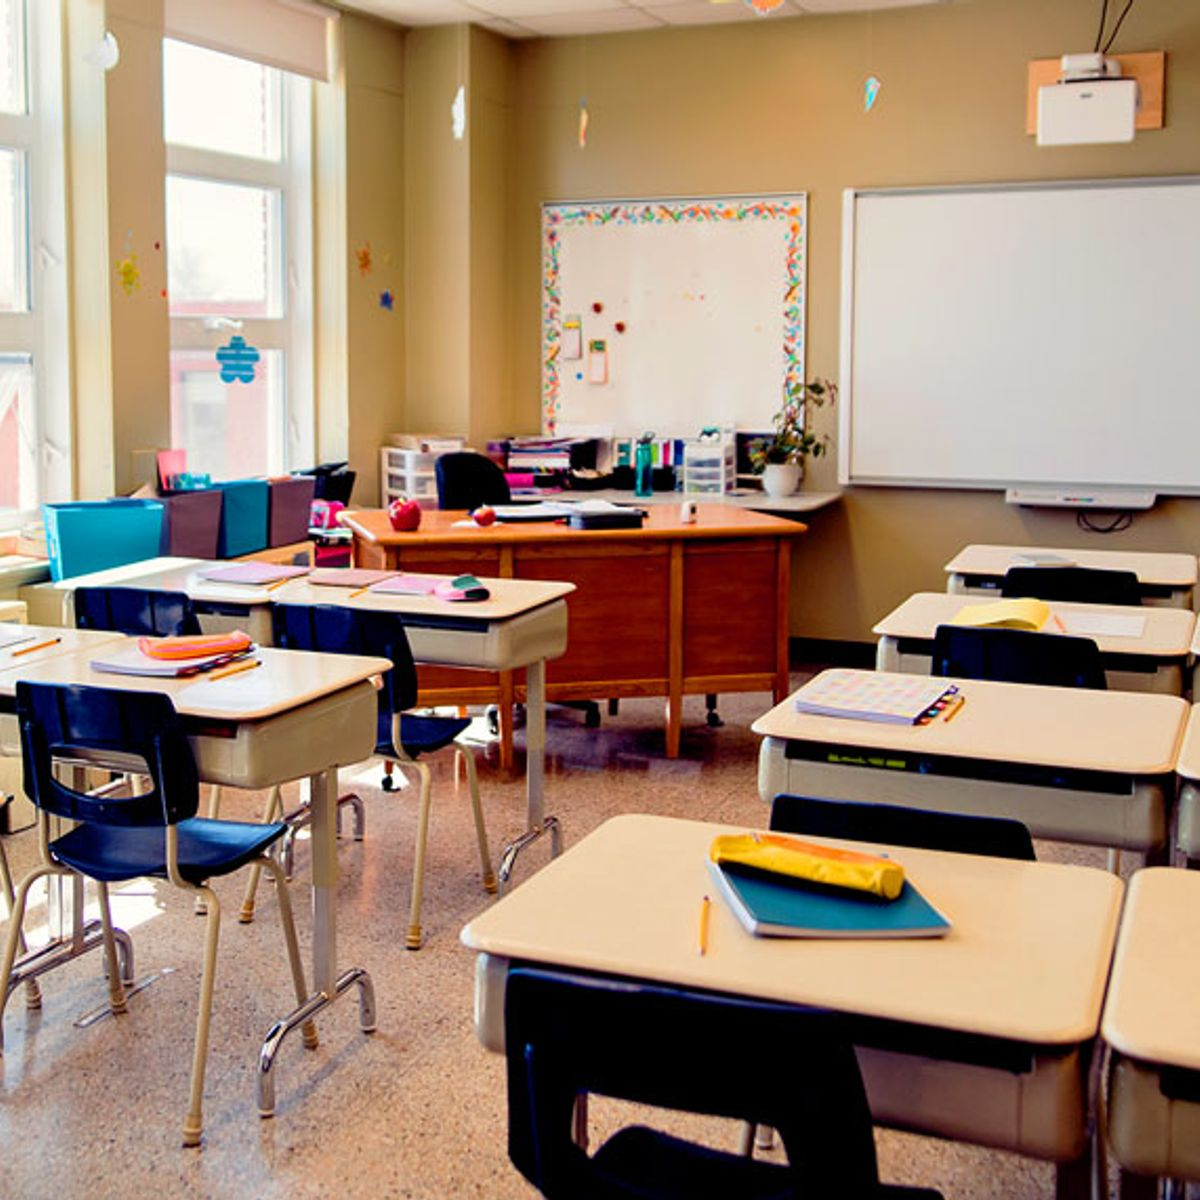 Our worst year yet, in the best-ranked school district